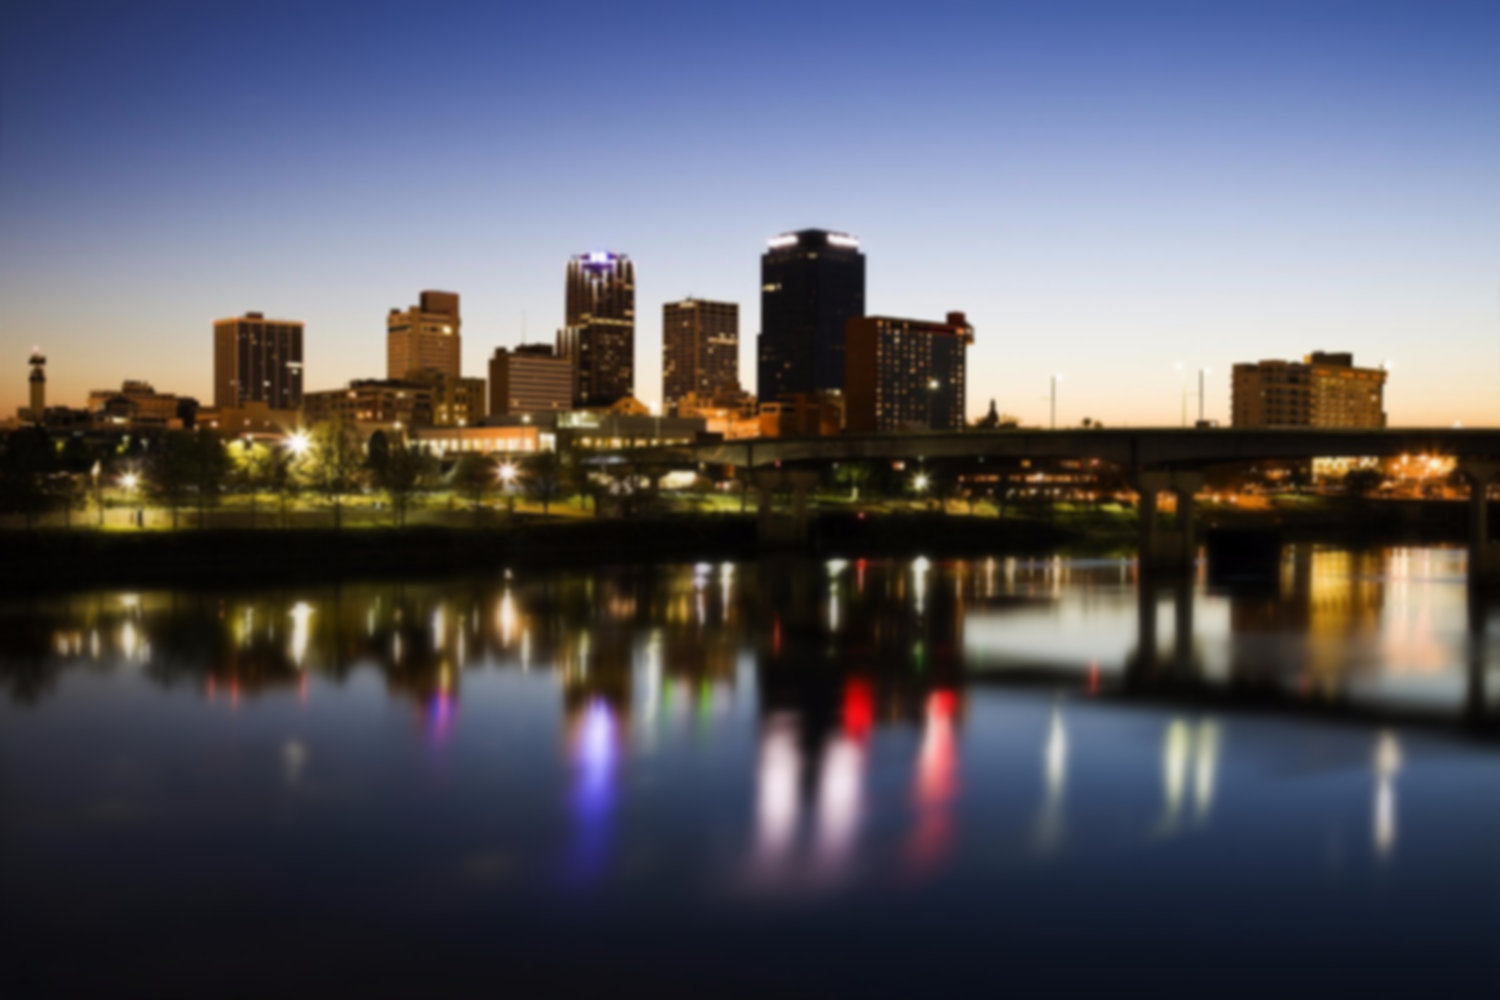 Little Rock, Arkansas where Pawnderosa Pawn Shop is located